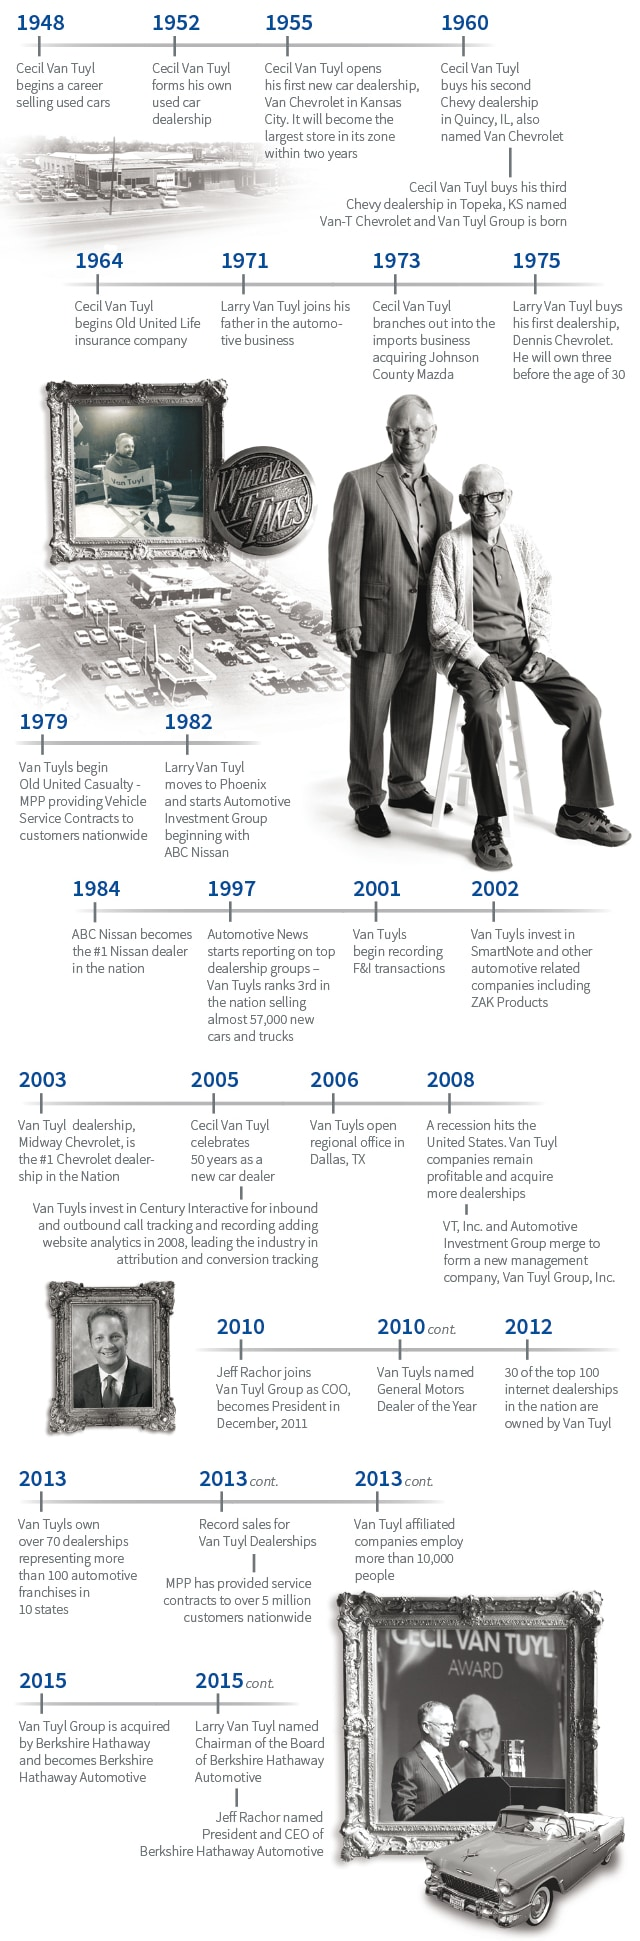 Timeline of Berkshire Hathaway Automotive